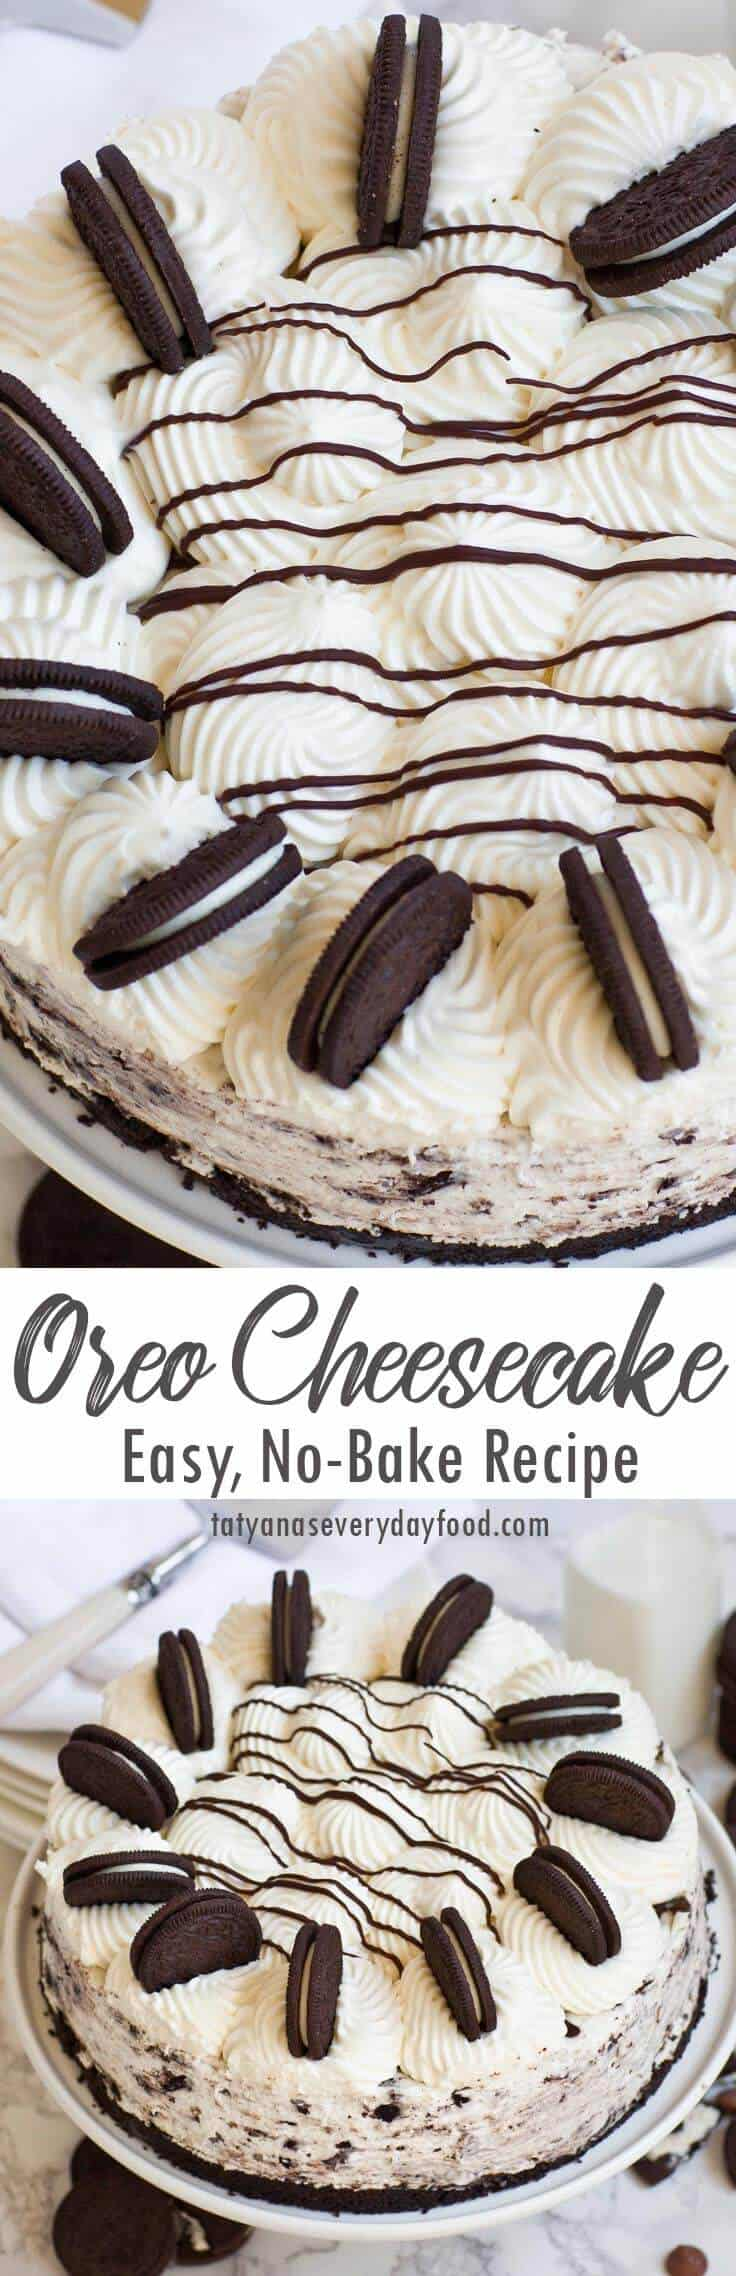 No Bake Oreo Cheesecake video recipe